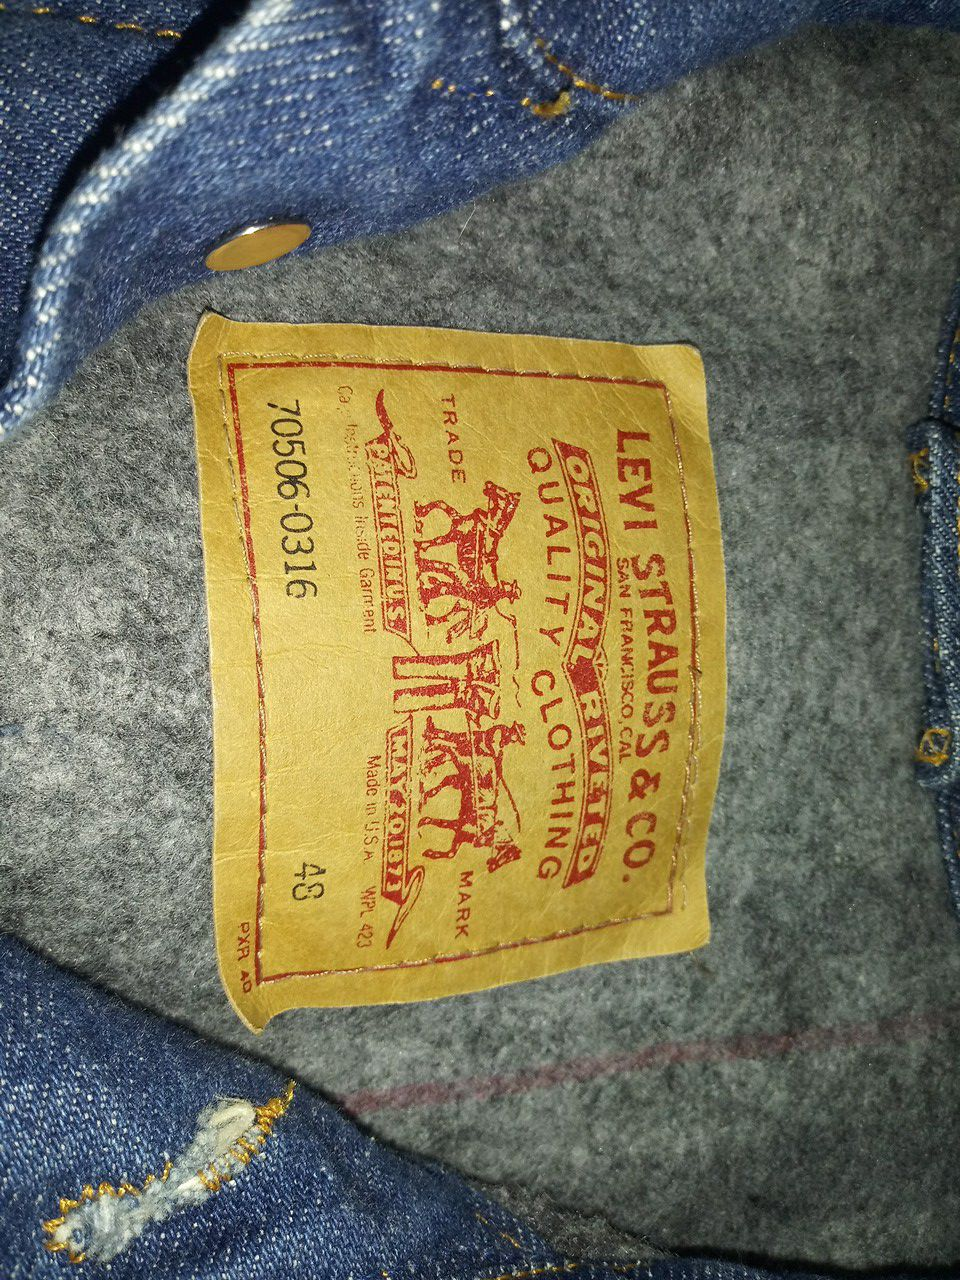 Warm up in this Men's Levi's wool lined denim jacket - Size 48